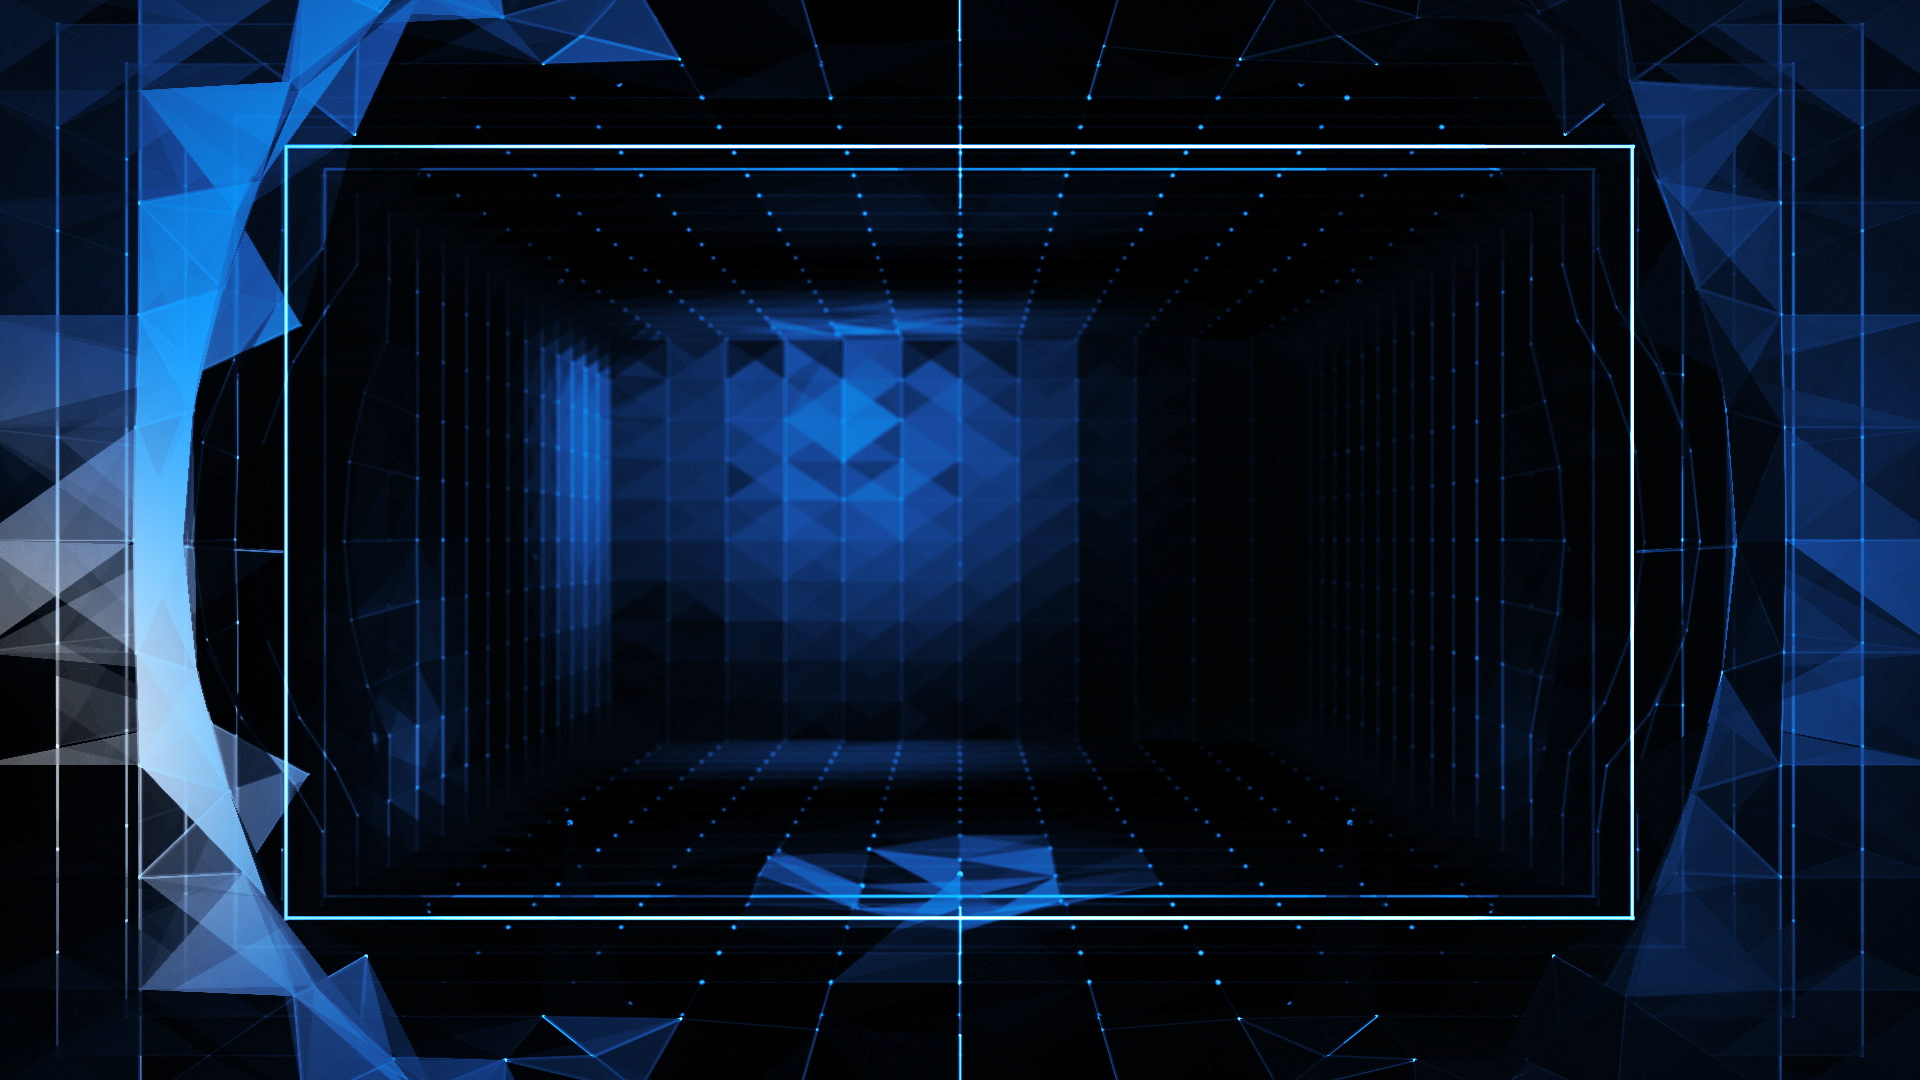 Vj grid room ghosteam vj loops video templates for Room design template grid